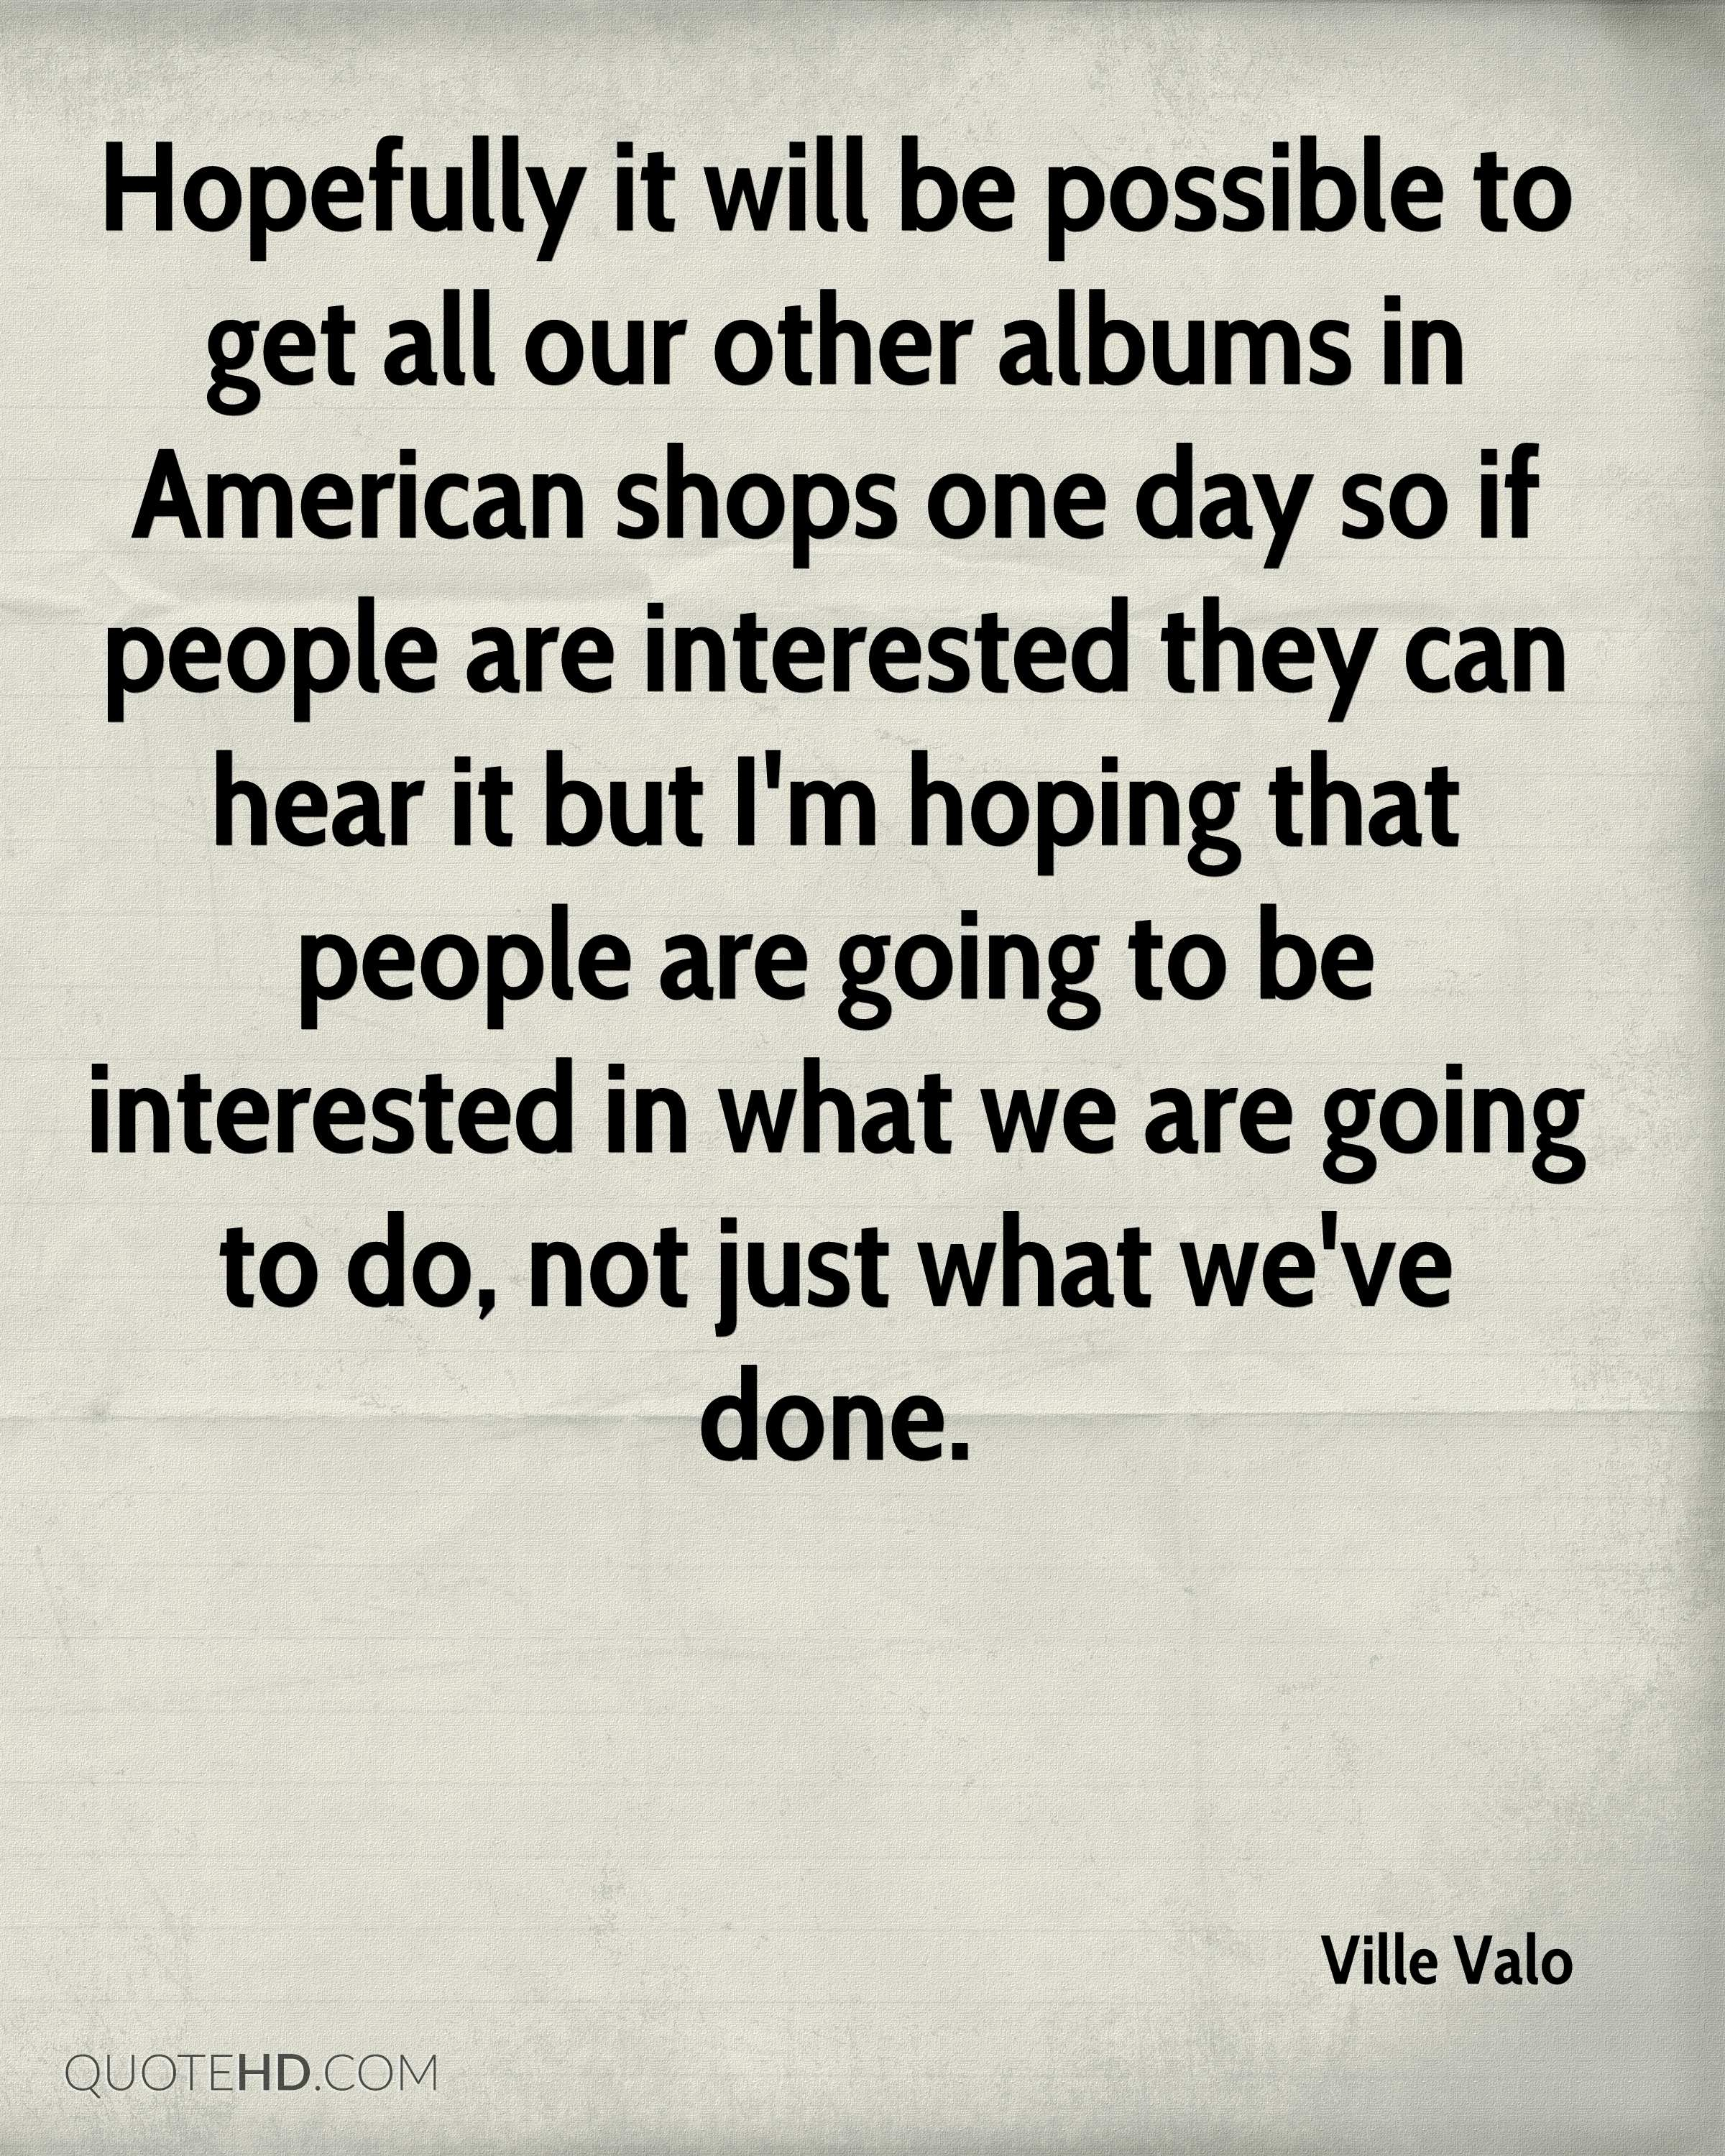 Hopefully it will be possible to get all our other albums in American shops one day so if people are interested they can hear it but I'm hoping that people are going to be interested in what we are going to do, not just what we've done.